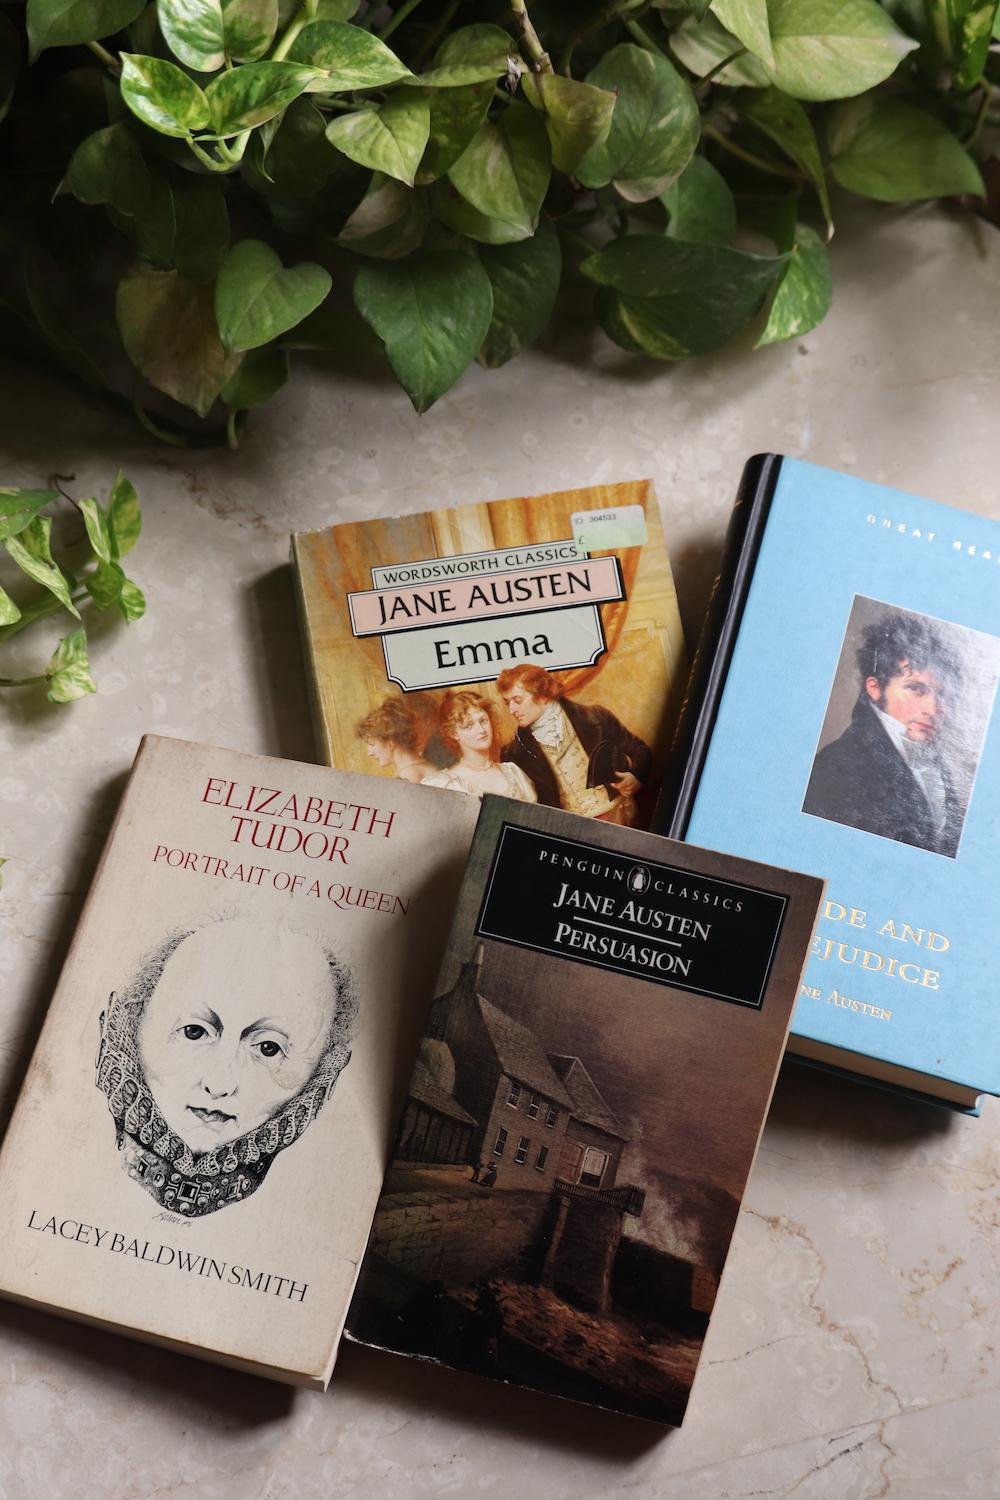 The essence of Jane Austen's writing transports me to an unknown England. Living in modern England, gives food to my imagination picturing some of these stories in the current landscape.